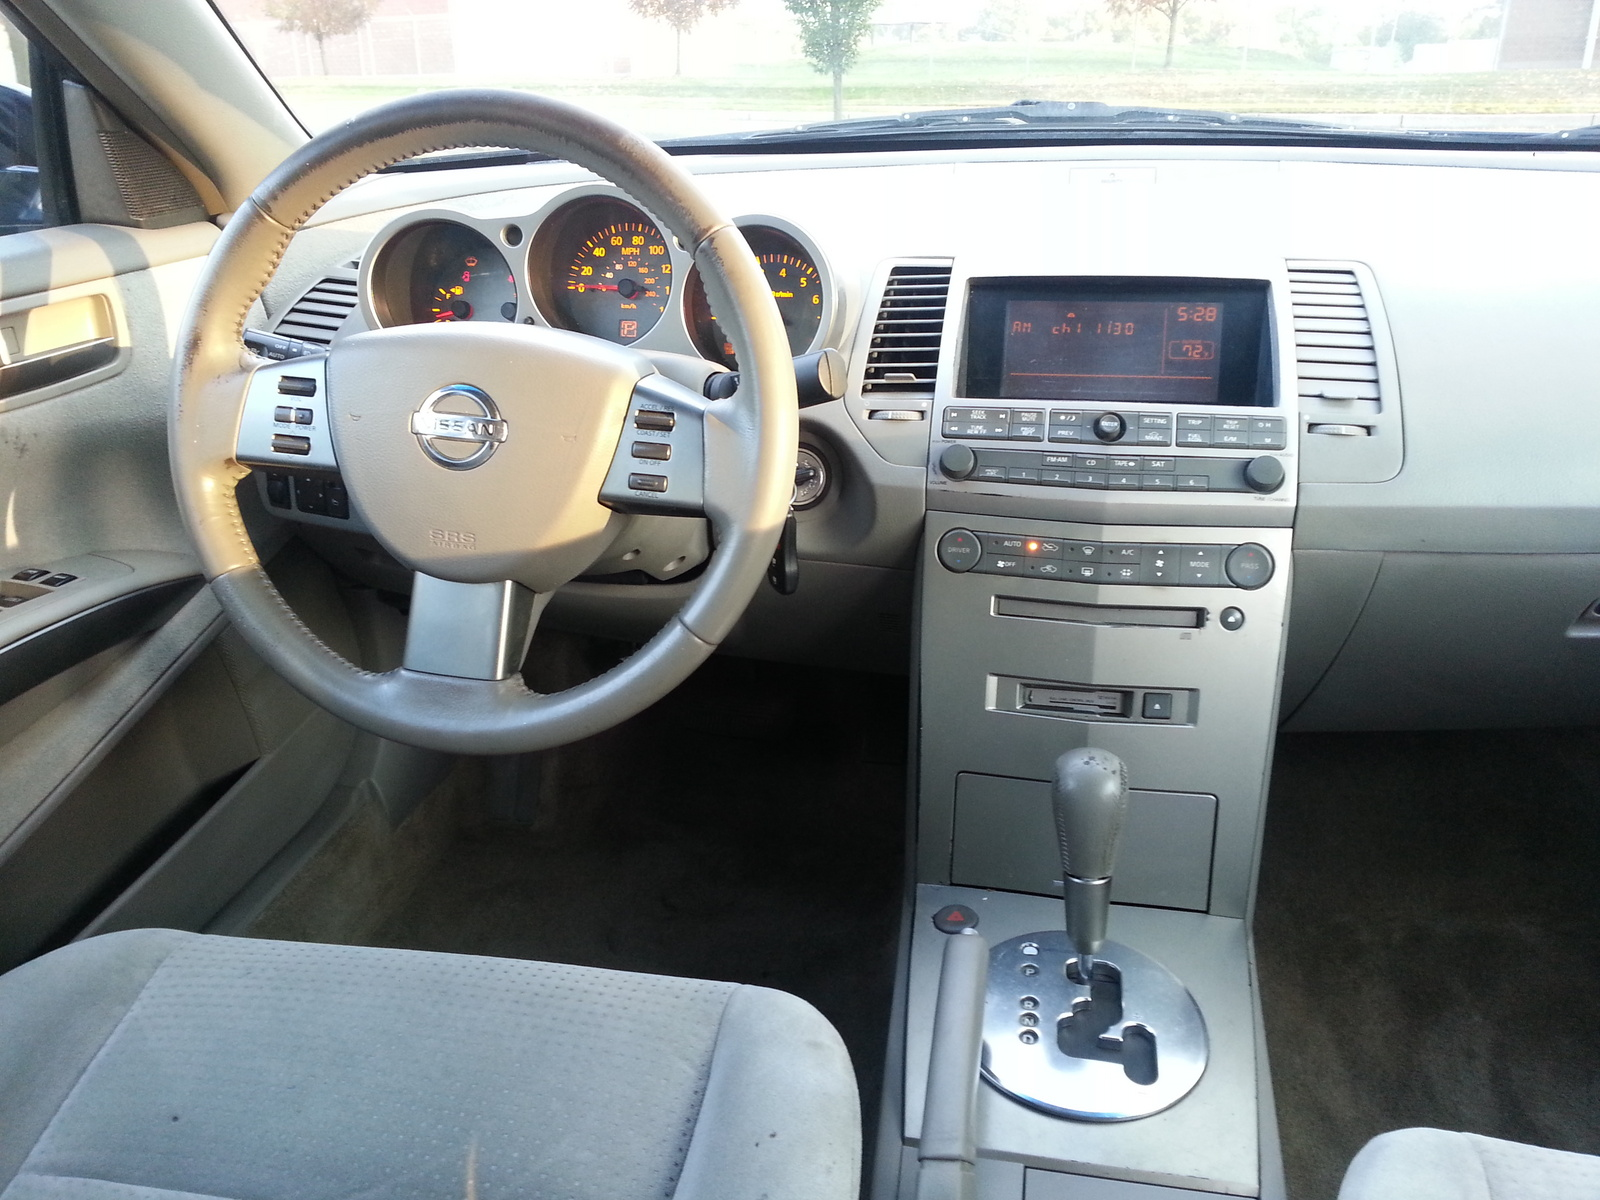 2004 nissan maxima interior images hd cars wallpaper nissan maxima 2004 black interior used 2004 nissan maxima for sale pricing amp features vanachro images vanachro Gallery